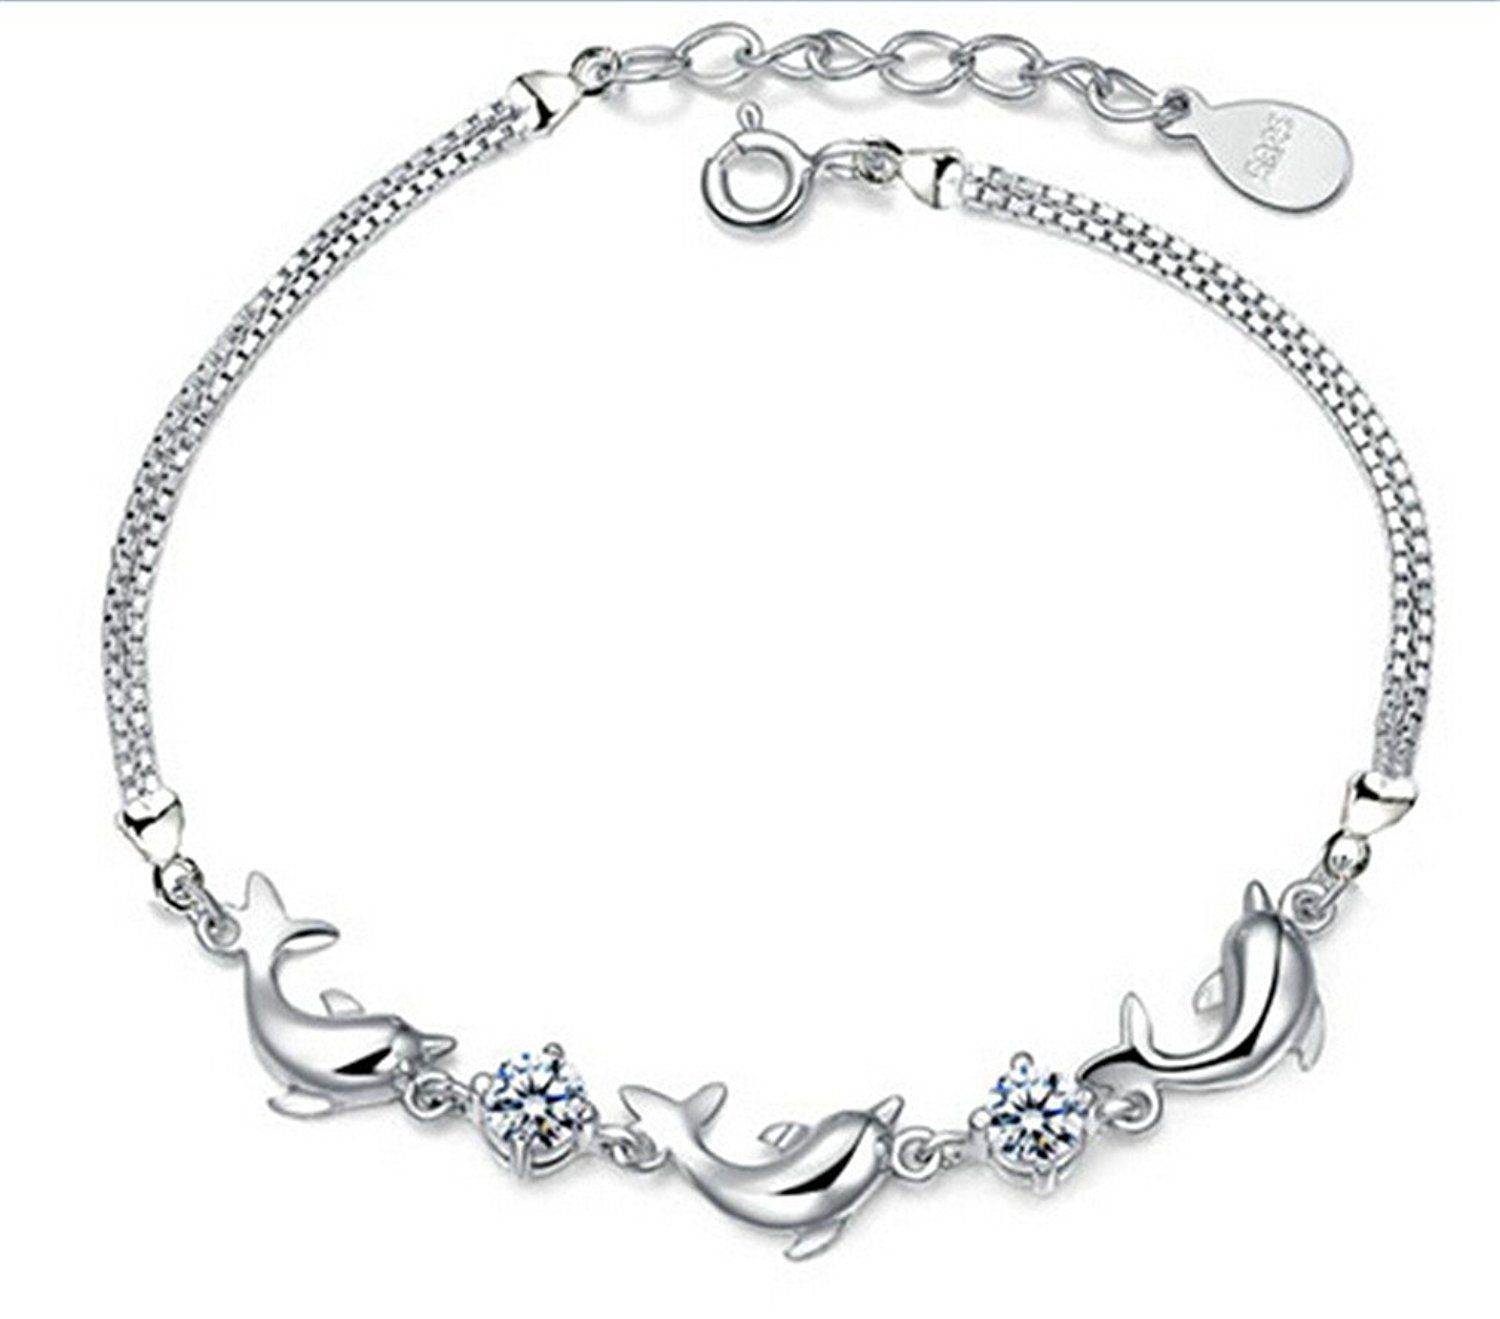 Womenus and girlsu charm bracelet sterling silver and zirconium